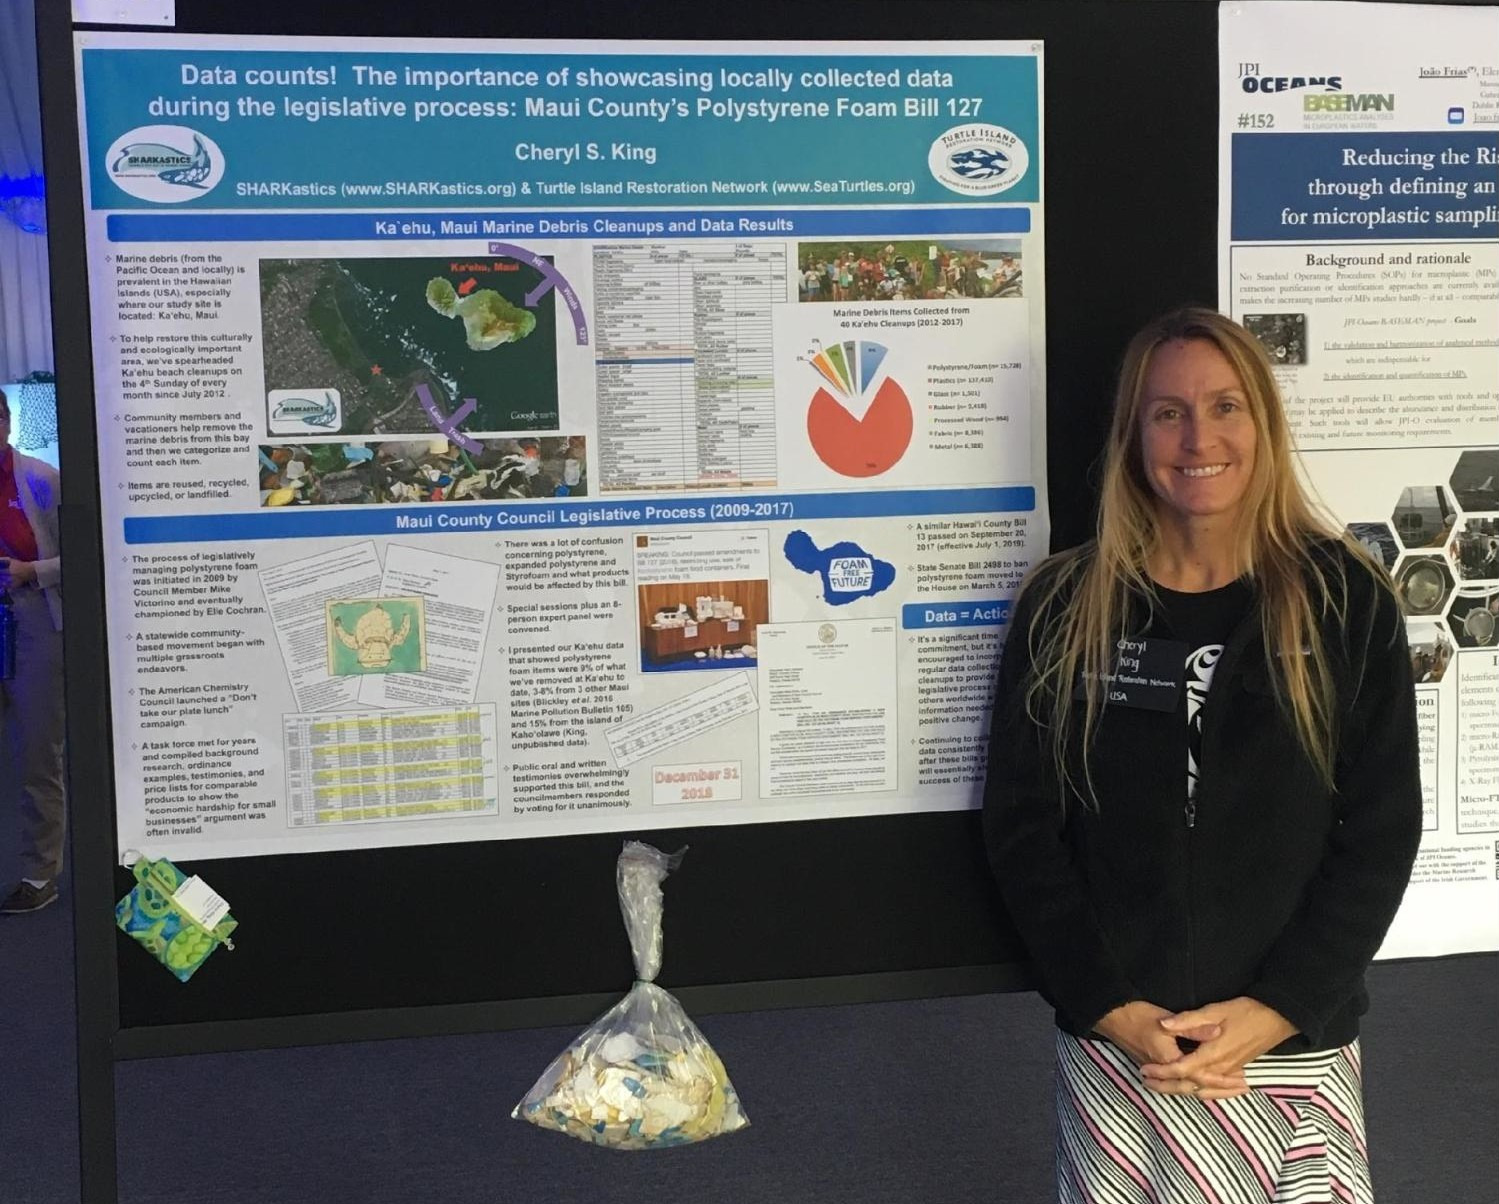 Cheryl King with Poster